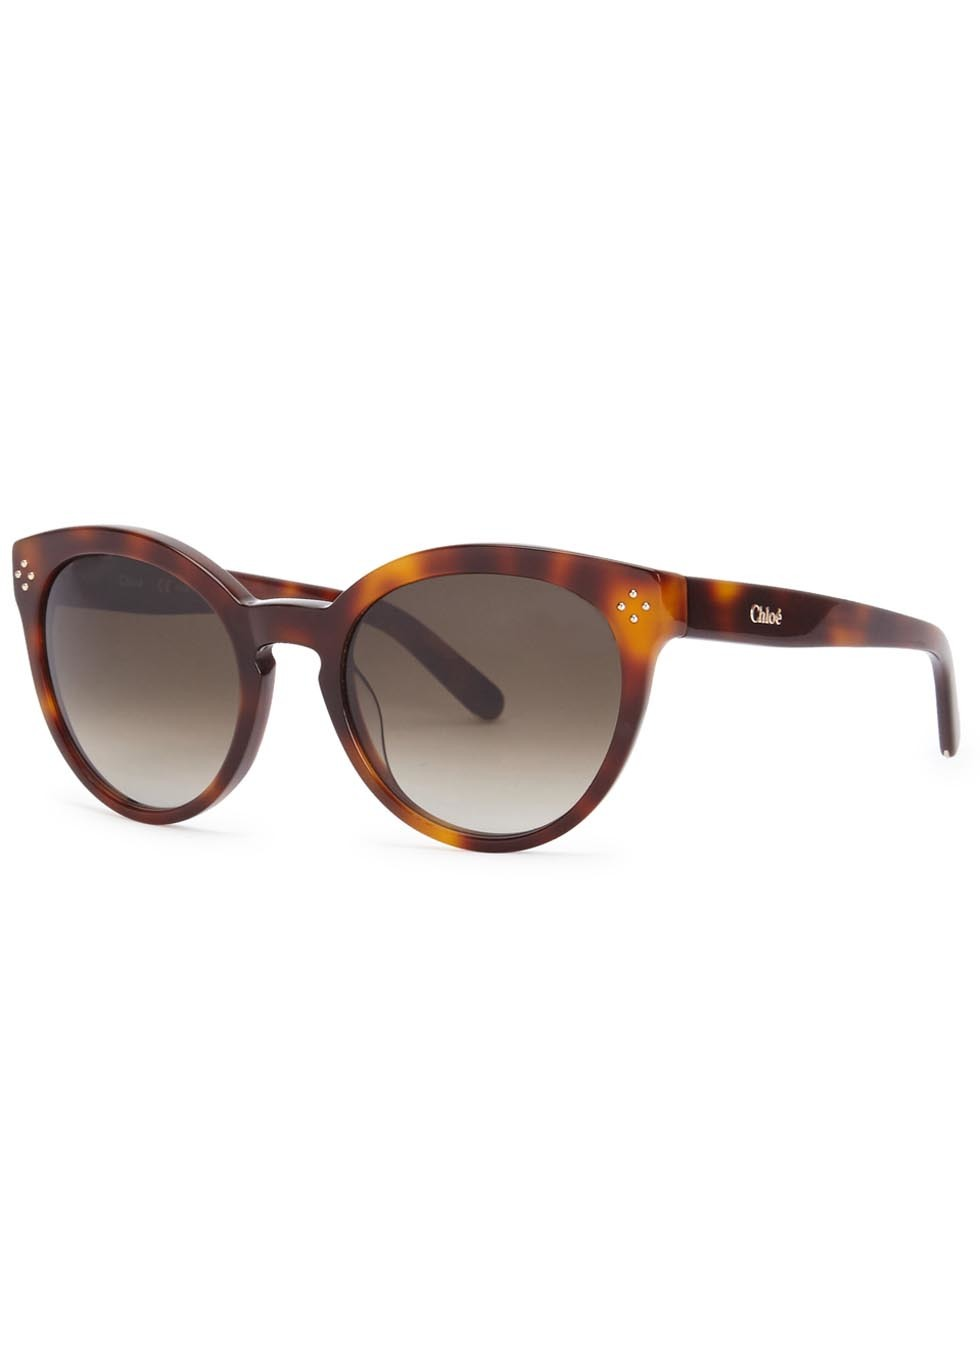 Boxwood Tortoiseshell Oval Frame Sunglasses - predominant colour: tan; occasions: casual, holiday; style: cateye; size: large; material: plastic/rubber; pattern: tortoiseshell; finish: plain; season: a/w 2015; wardrobe: highlight